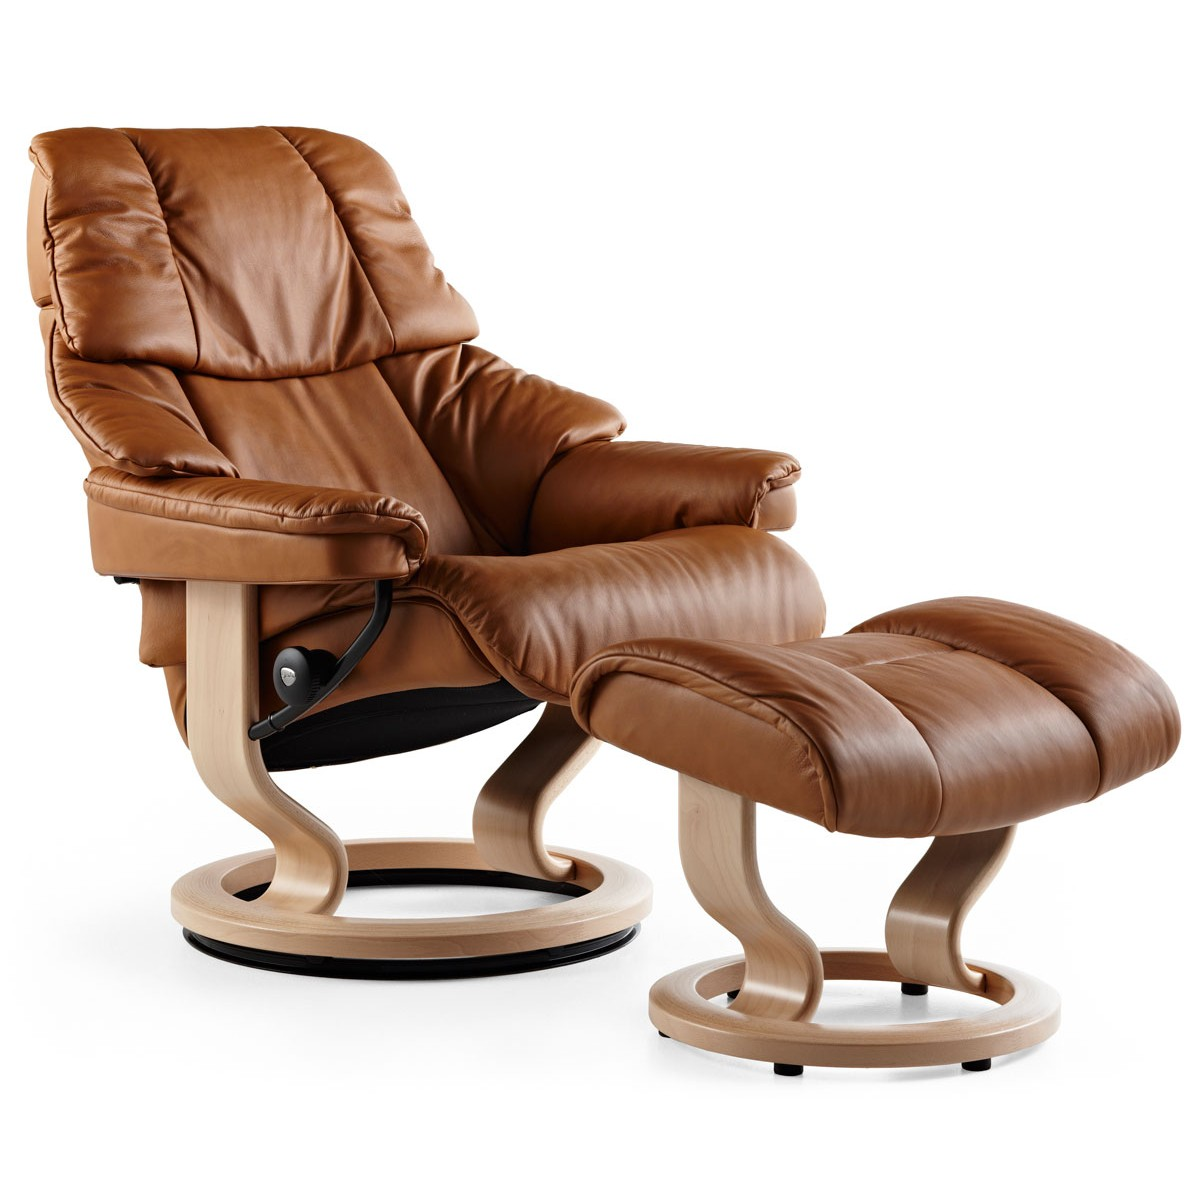 Stresless Stressless Reno Large Recliner Ottoman